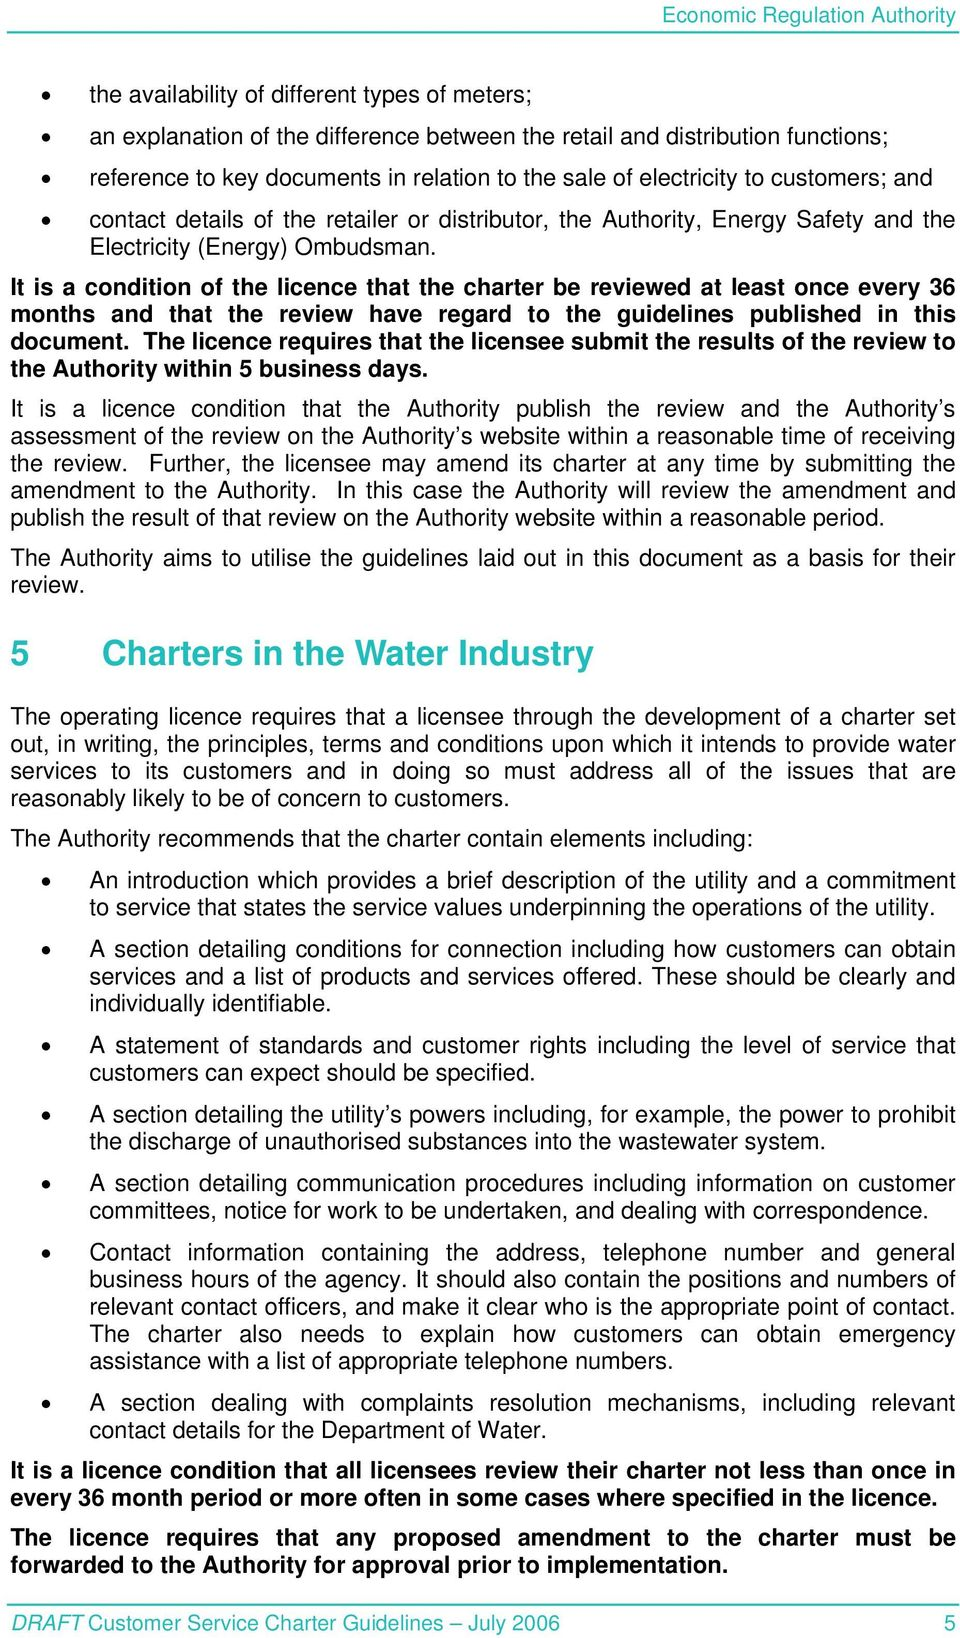 It is a condition of the licence that the charter be reviewed at least once every 36 months and that the review have regard to the guidelines published in this document.